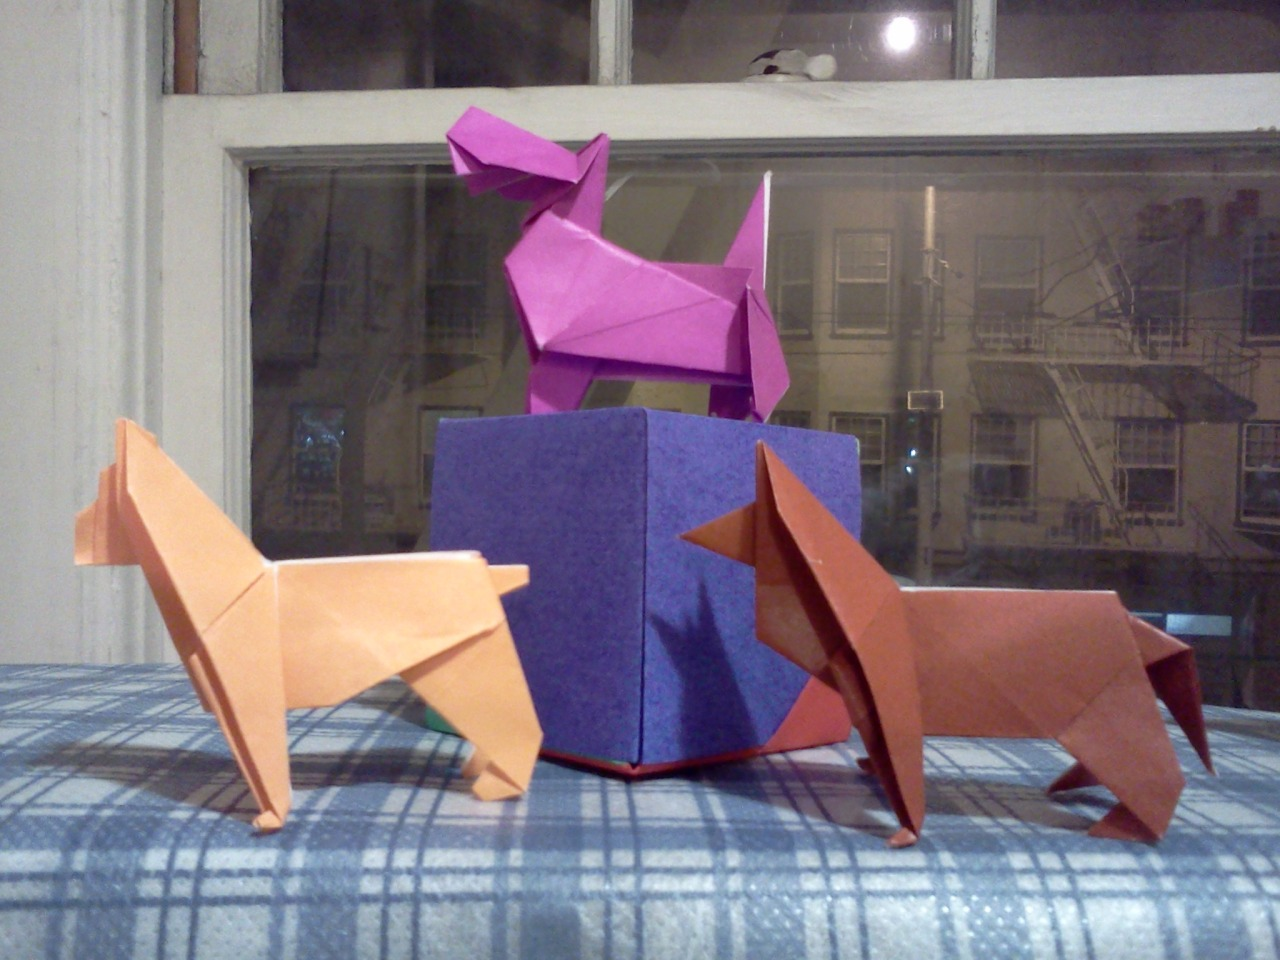 Trio Of Origami Dogs Boxer Scottish Terrier German Shepherd Designed By Peterpaul